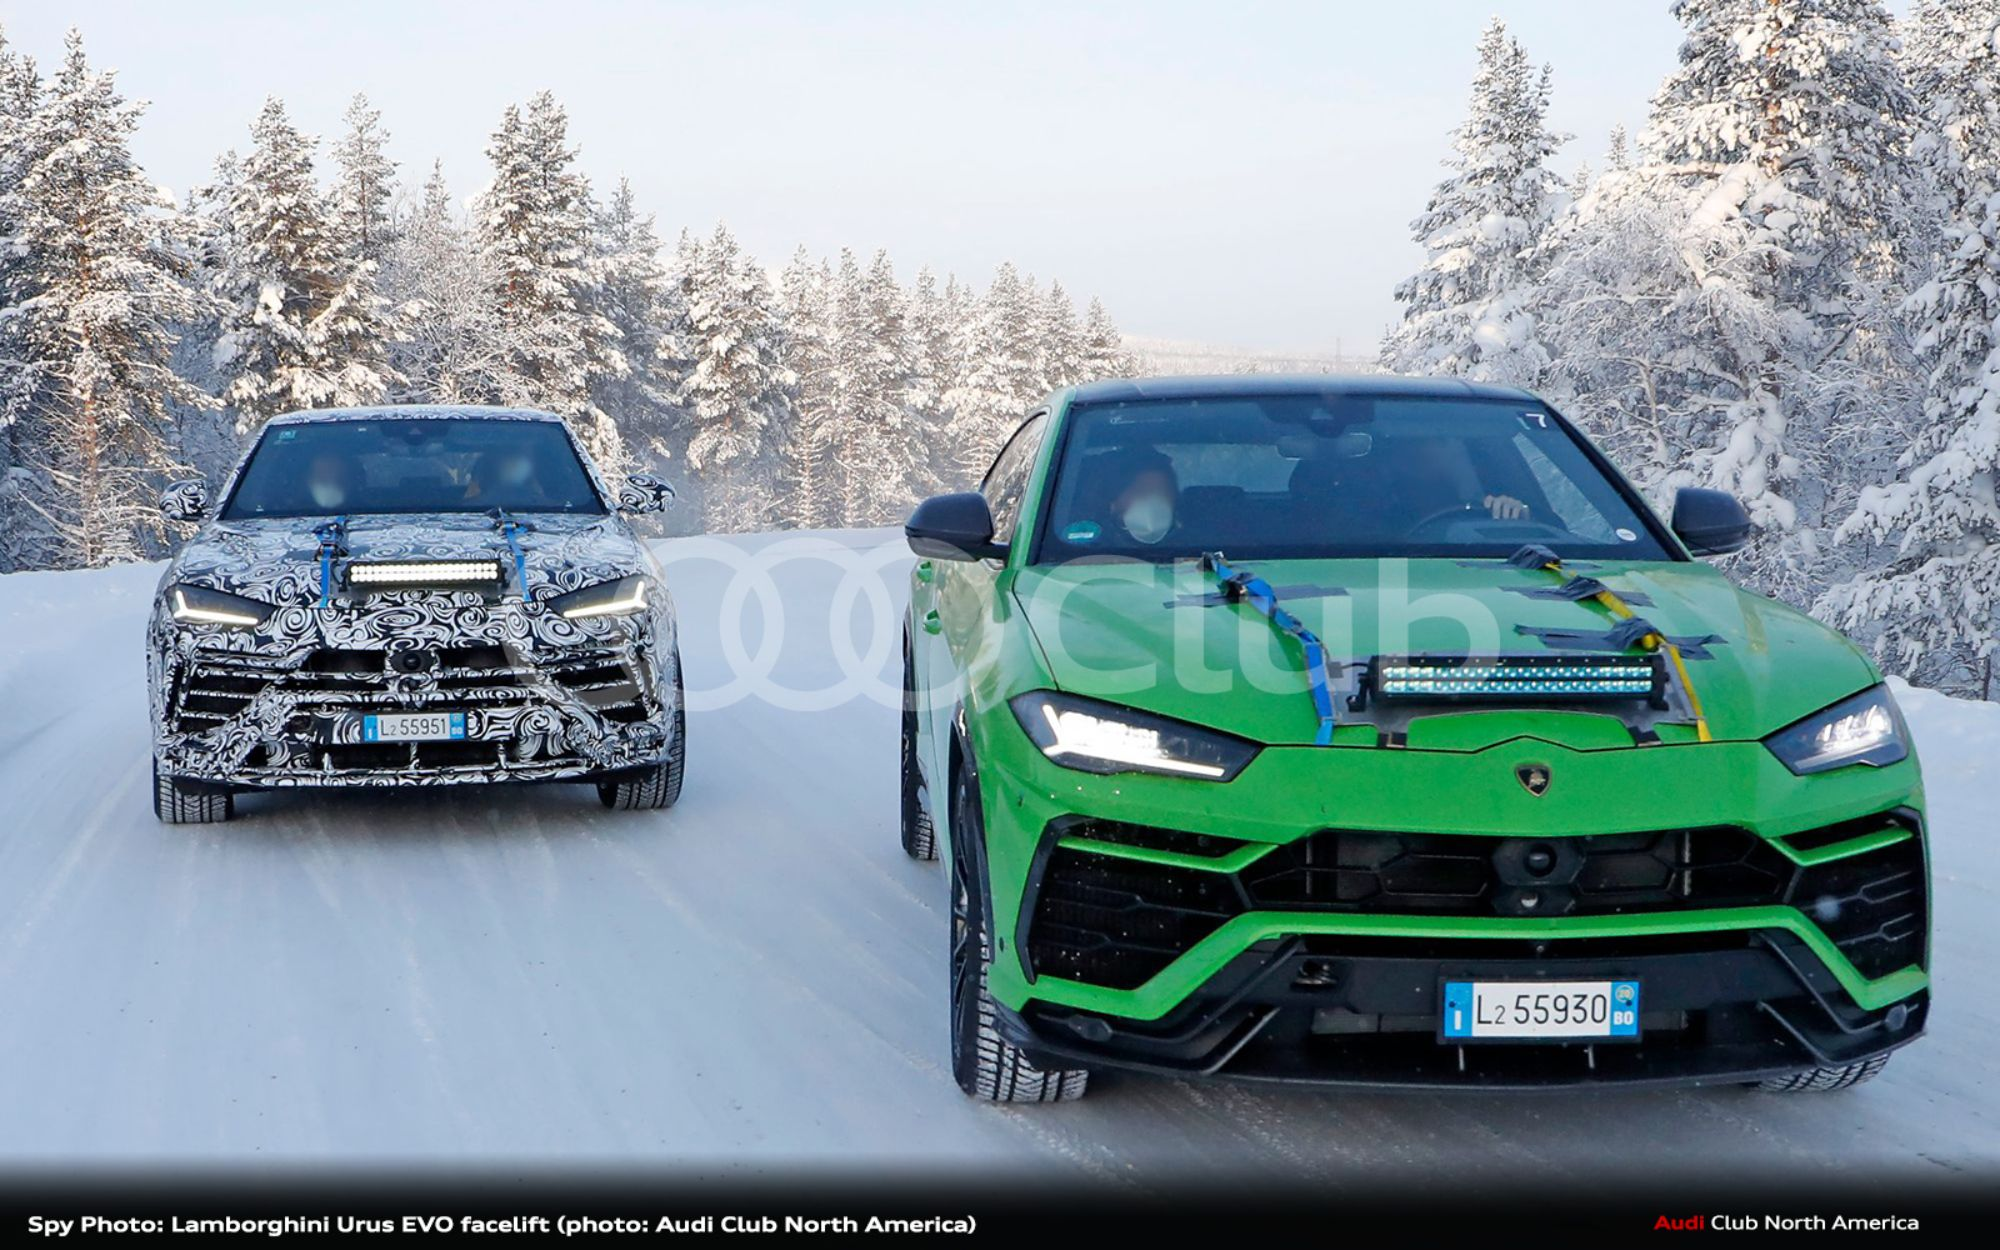 Spy Photo: Lamborghini Urus EVO Facelift